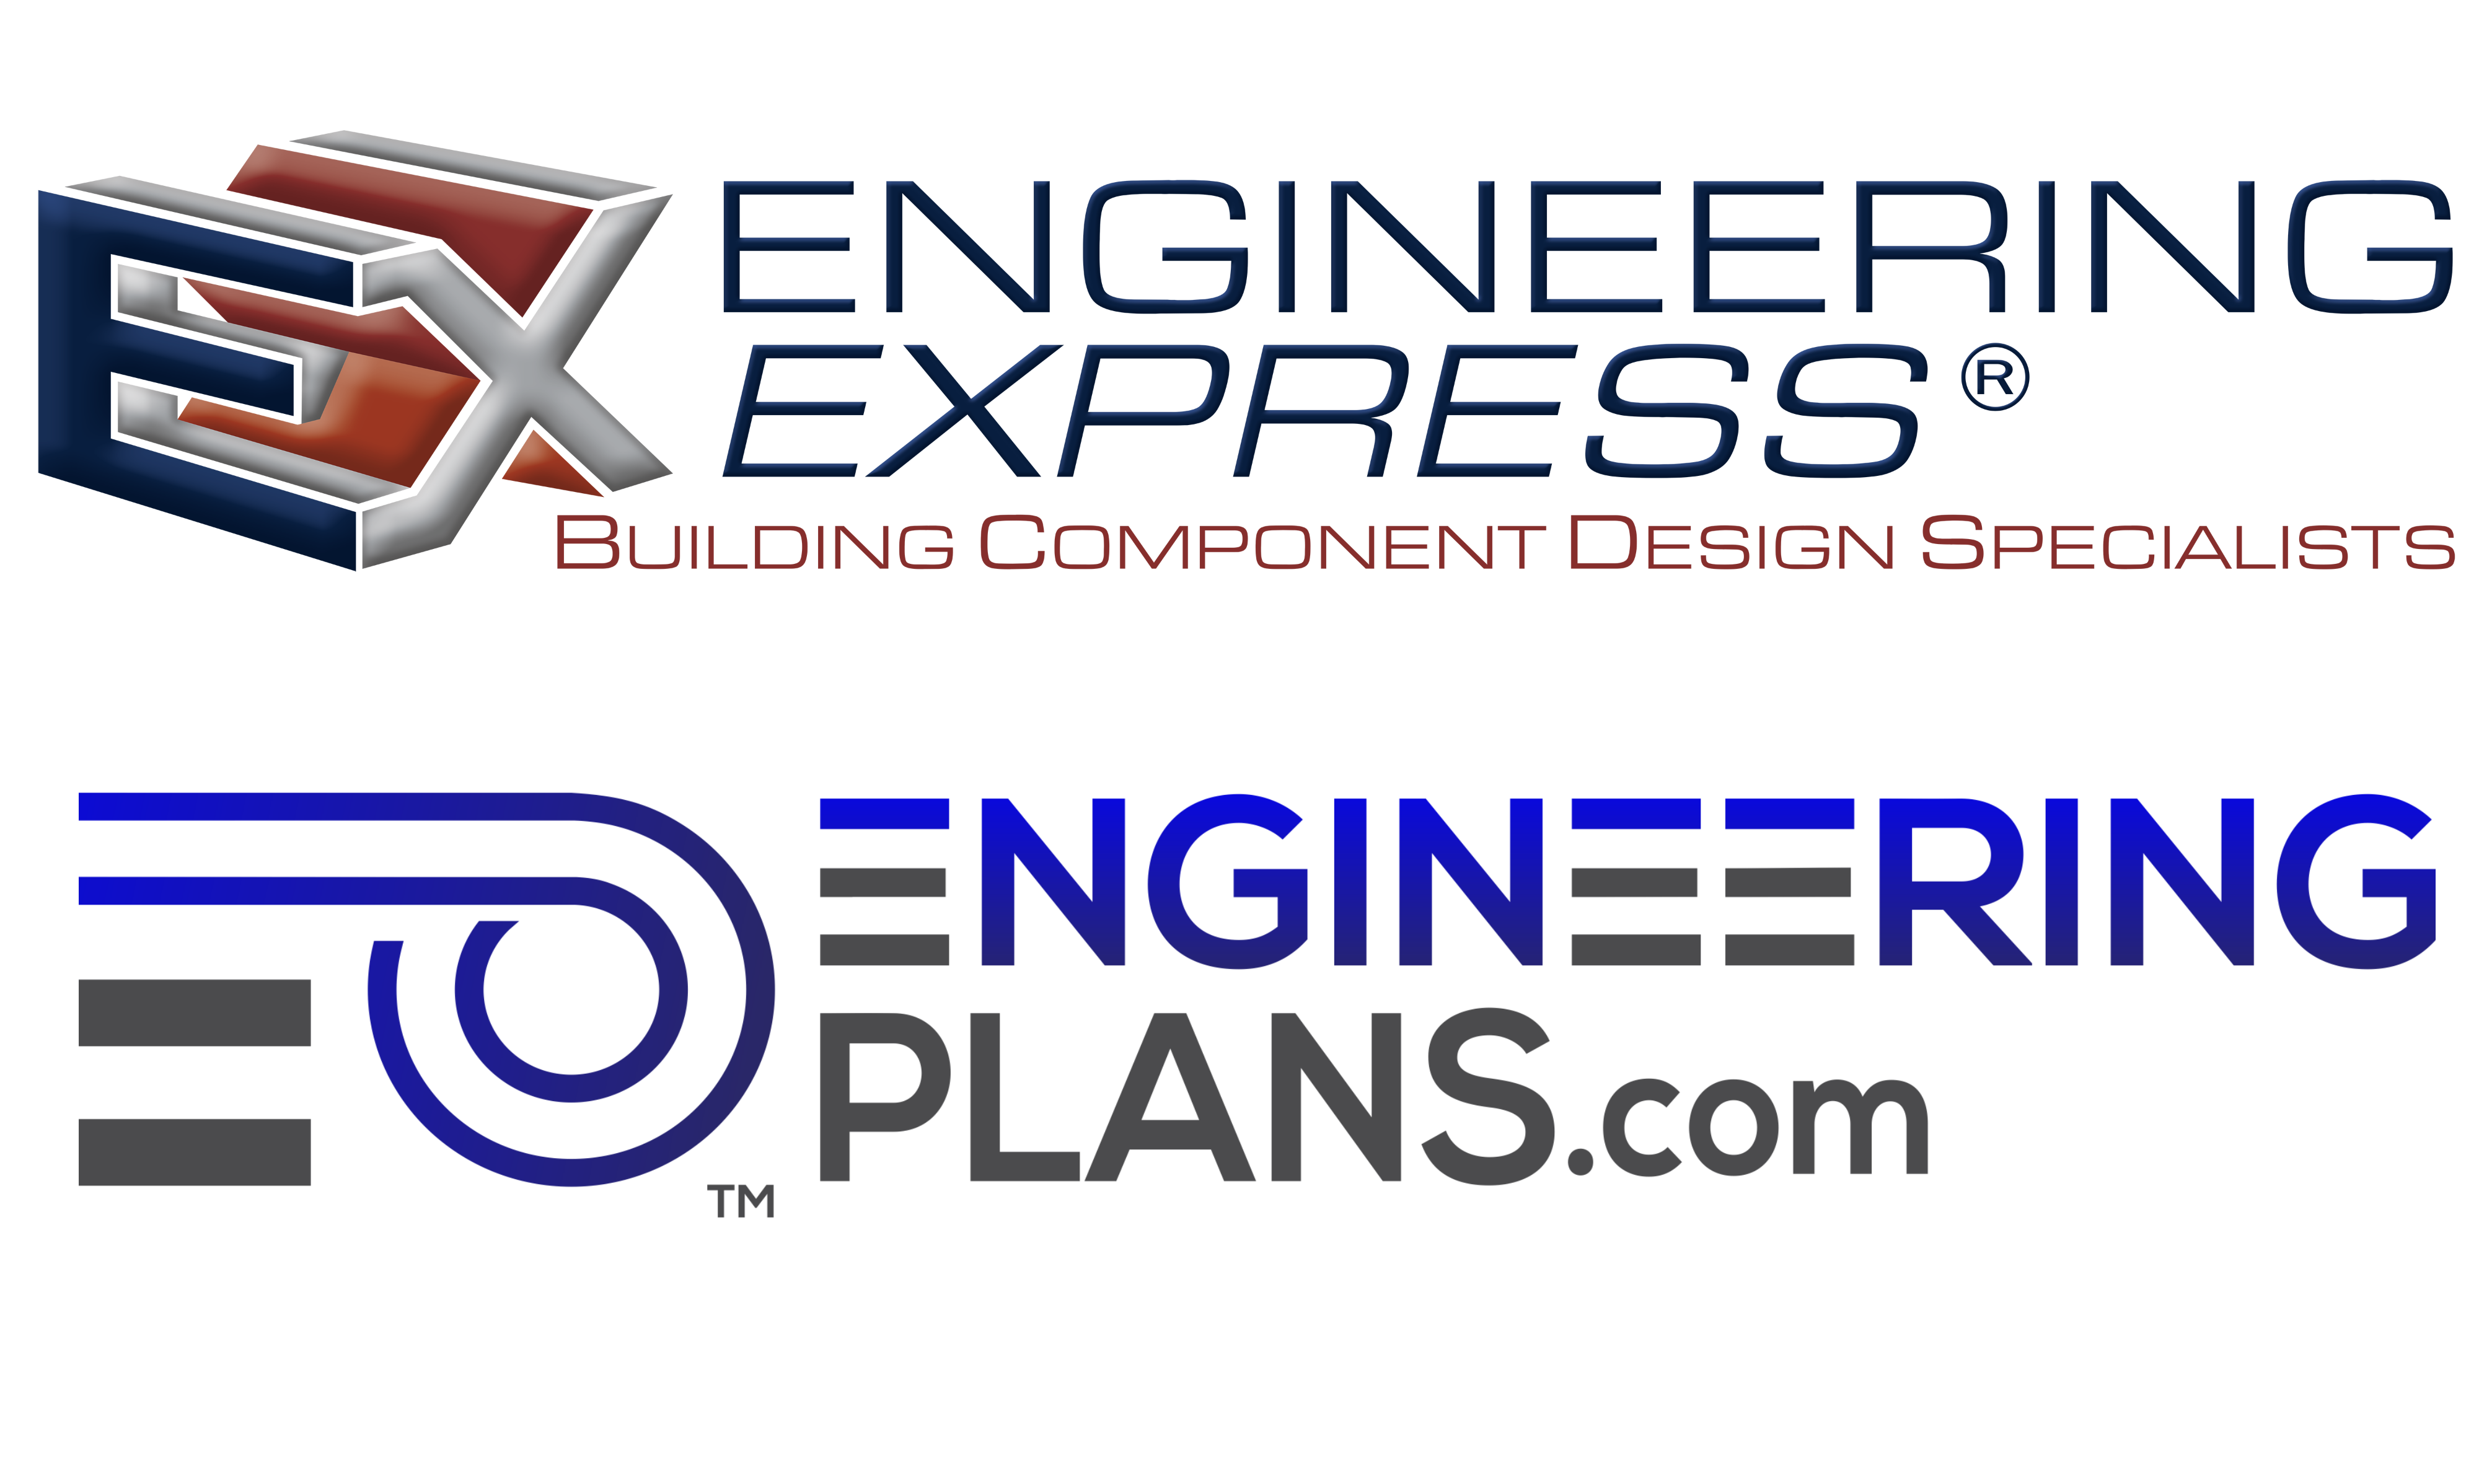 Engineering Express and EngineeringPlans.com